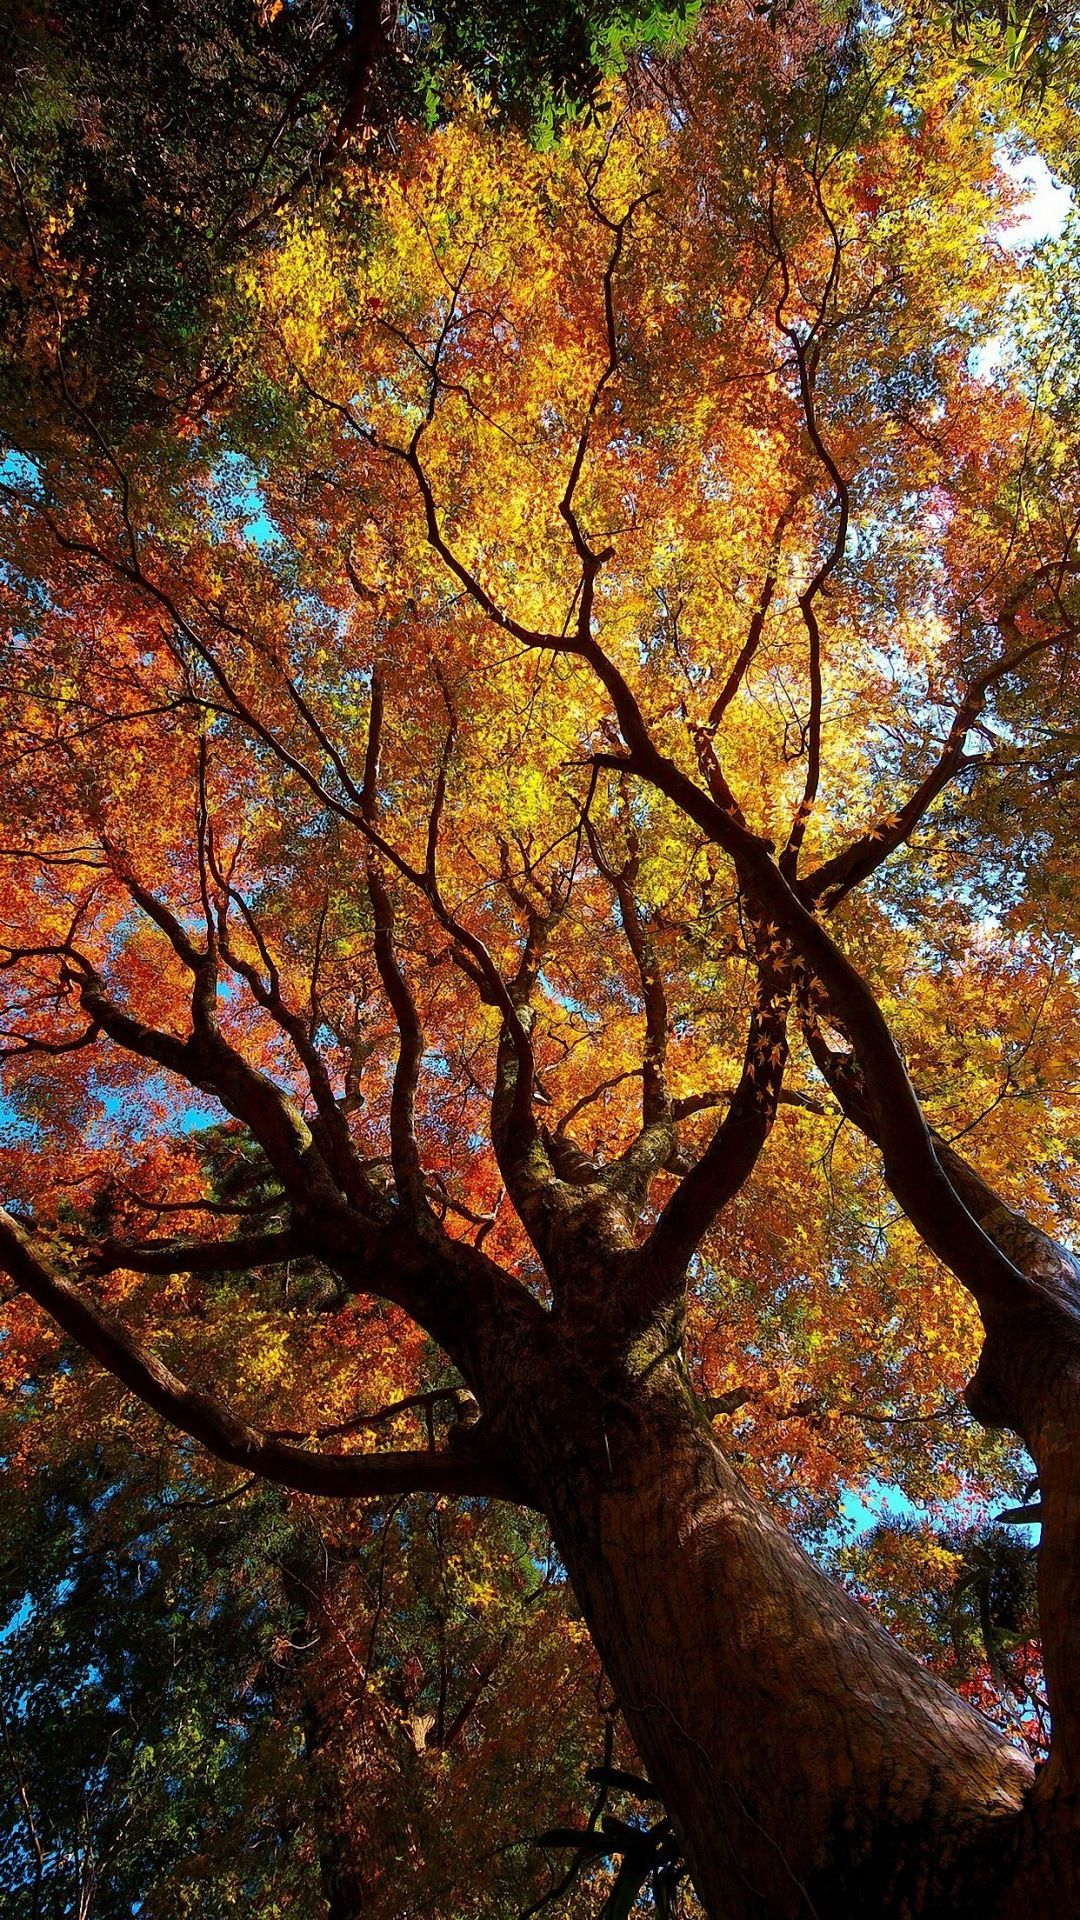 HD glorious tree iPhone 6 / 6s / Plus wallpapers, nature